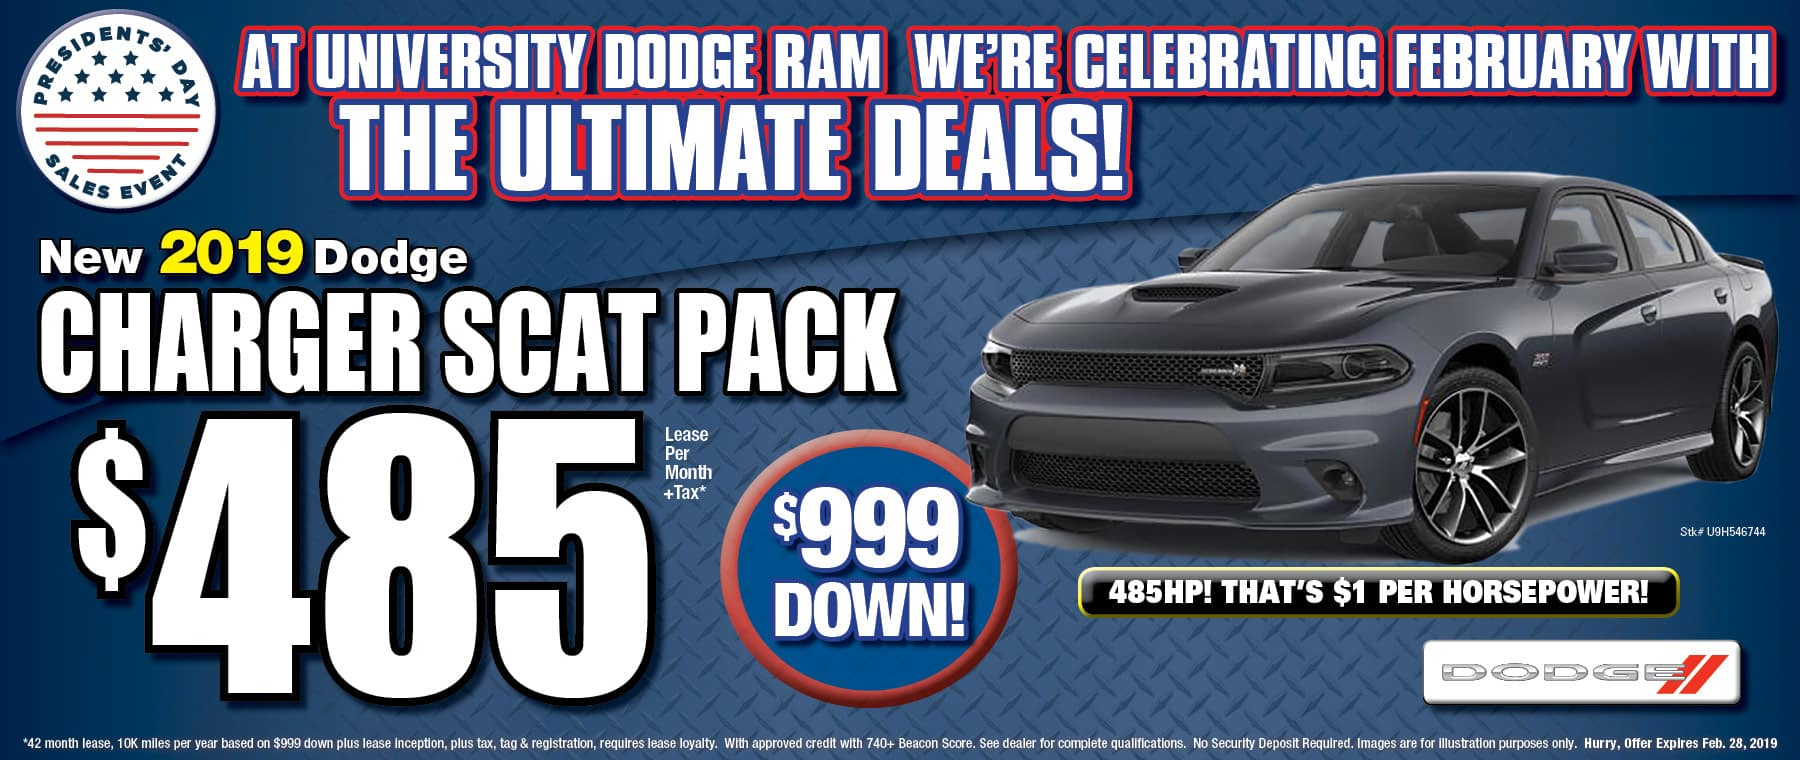 Power - Dodge Charger SCAT PACK - University Dodge RAM!